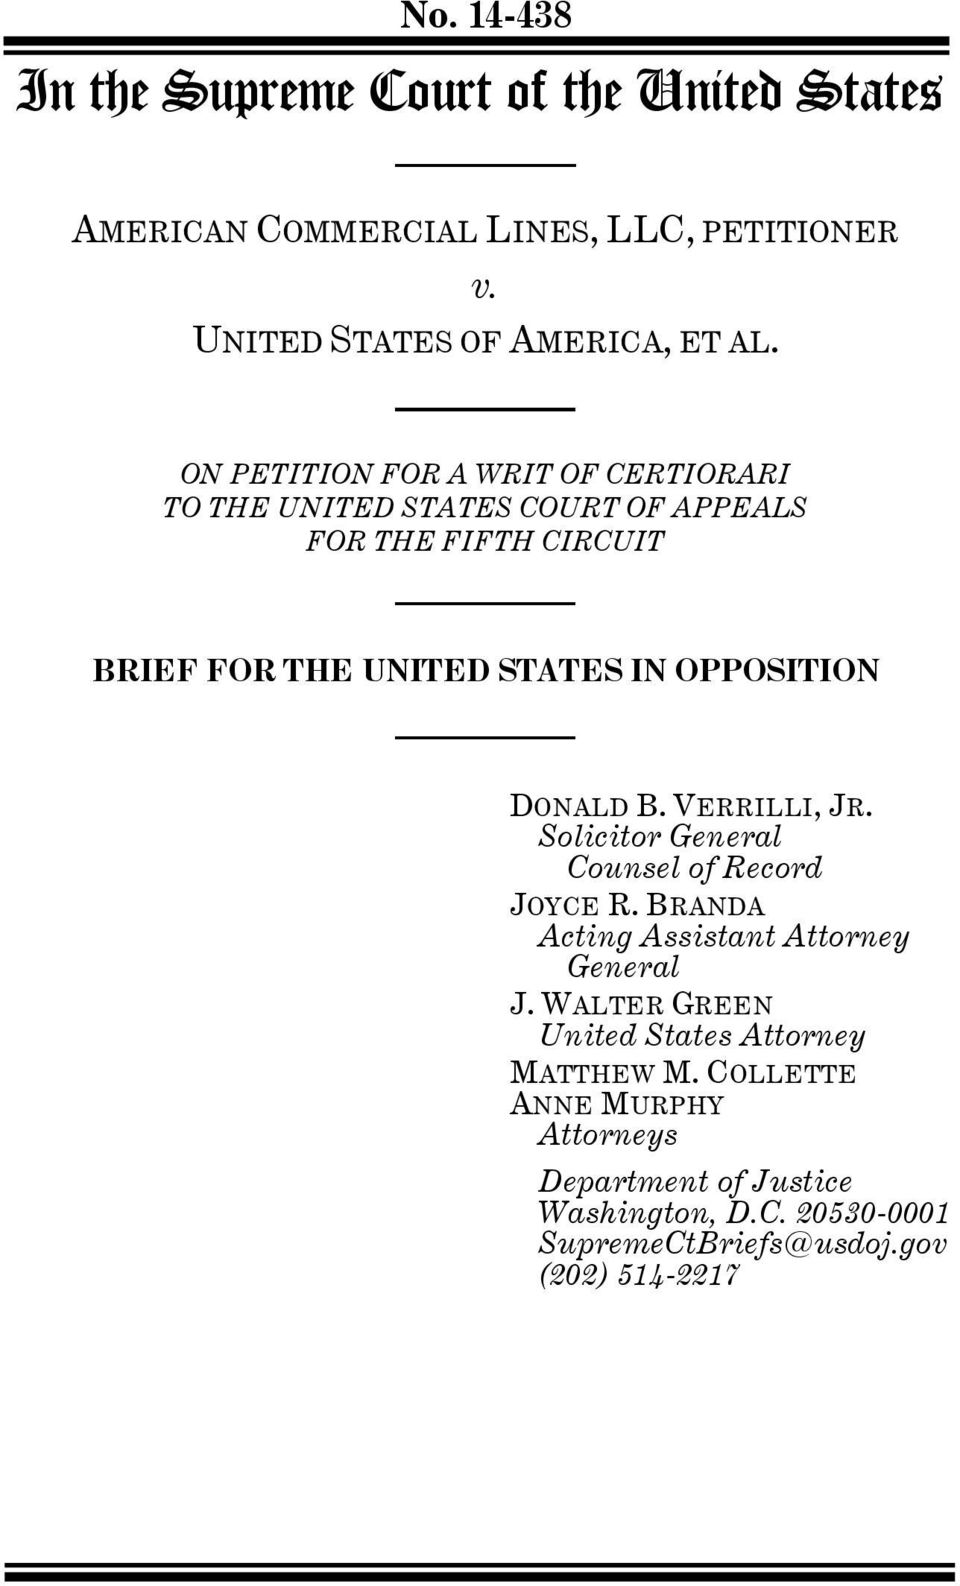 OPPOSITION DONALD B. VERRILLI, JR. Solicitor General Counsel of Record JOYCE R. BRANDA Acting Assistant Attorney General J.